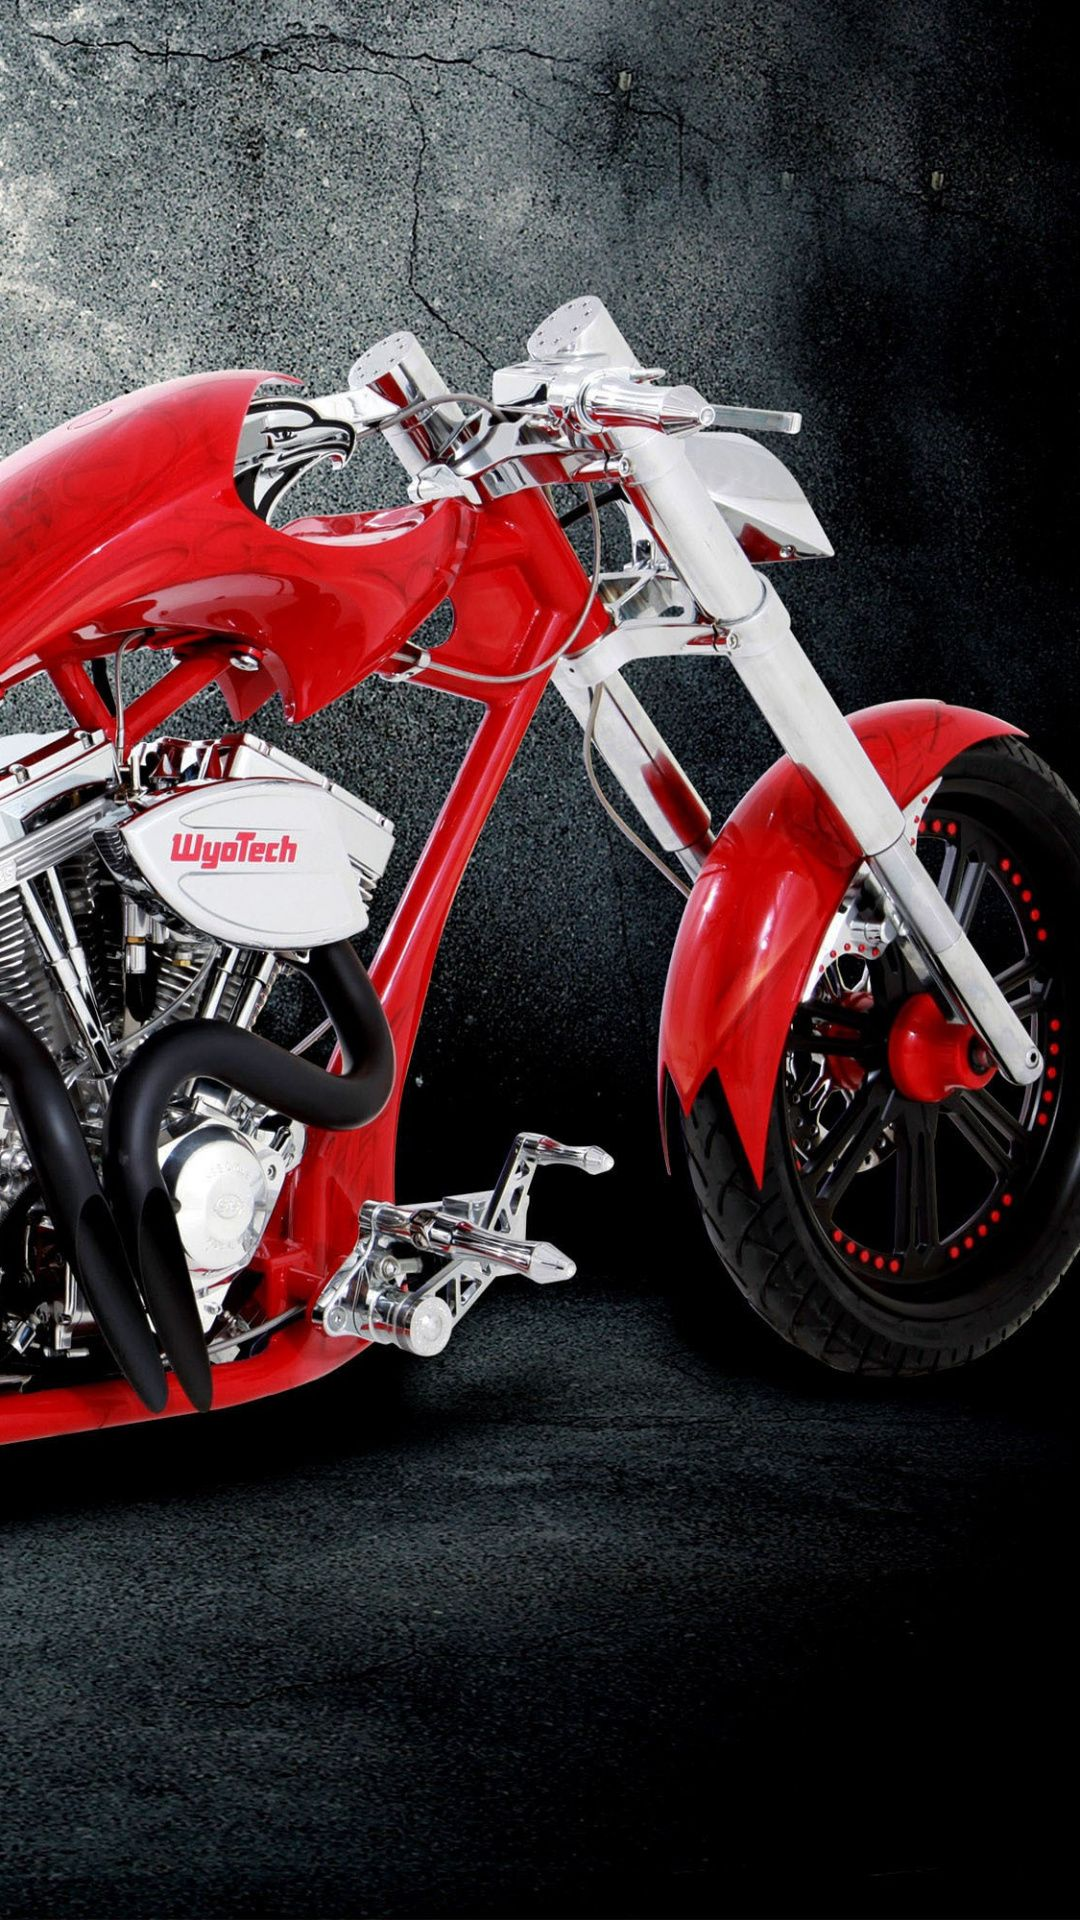 Wallpapers motorcycle, car, red, automotive tire, chopper